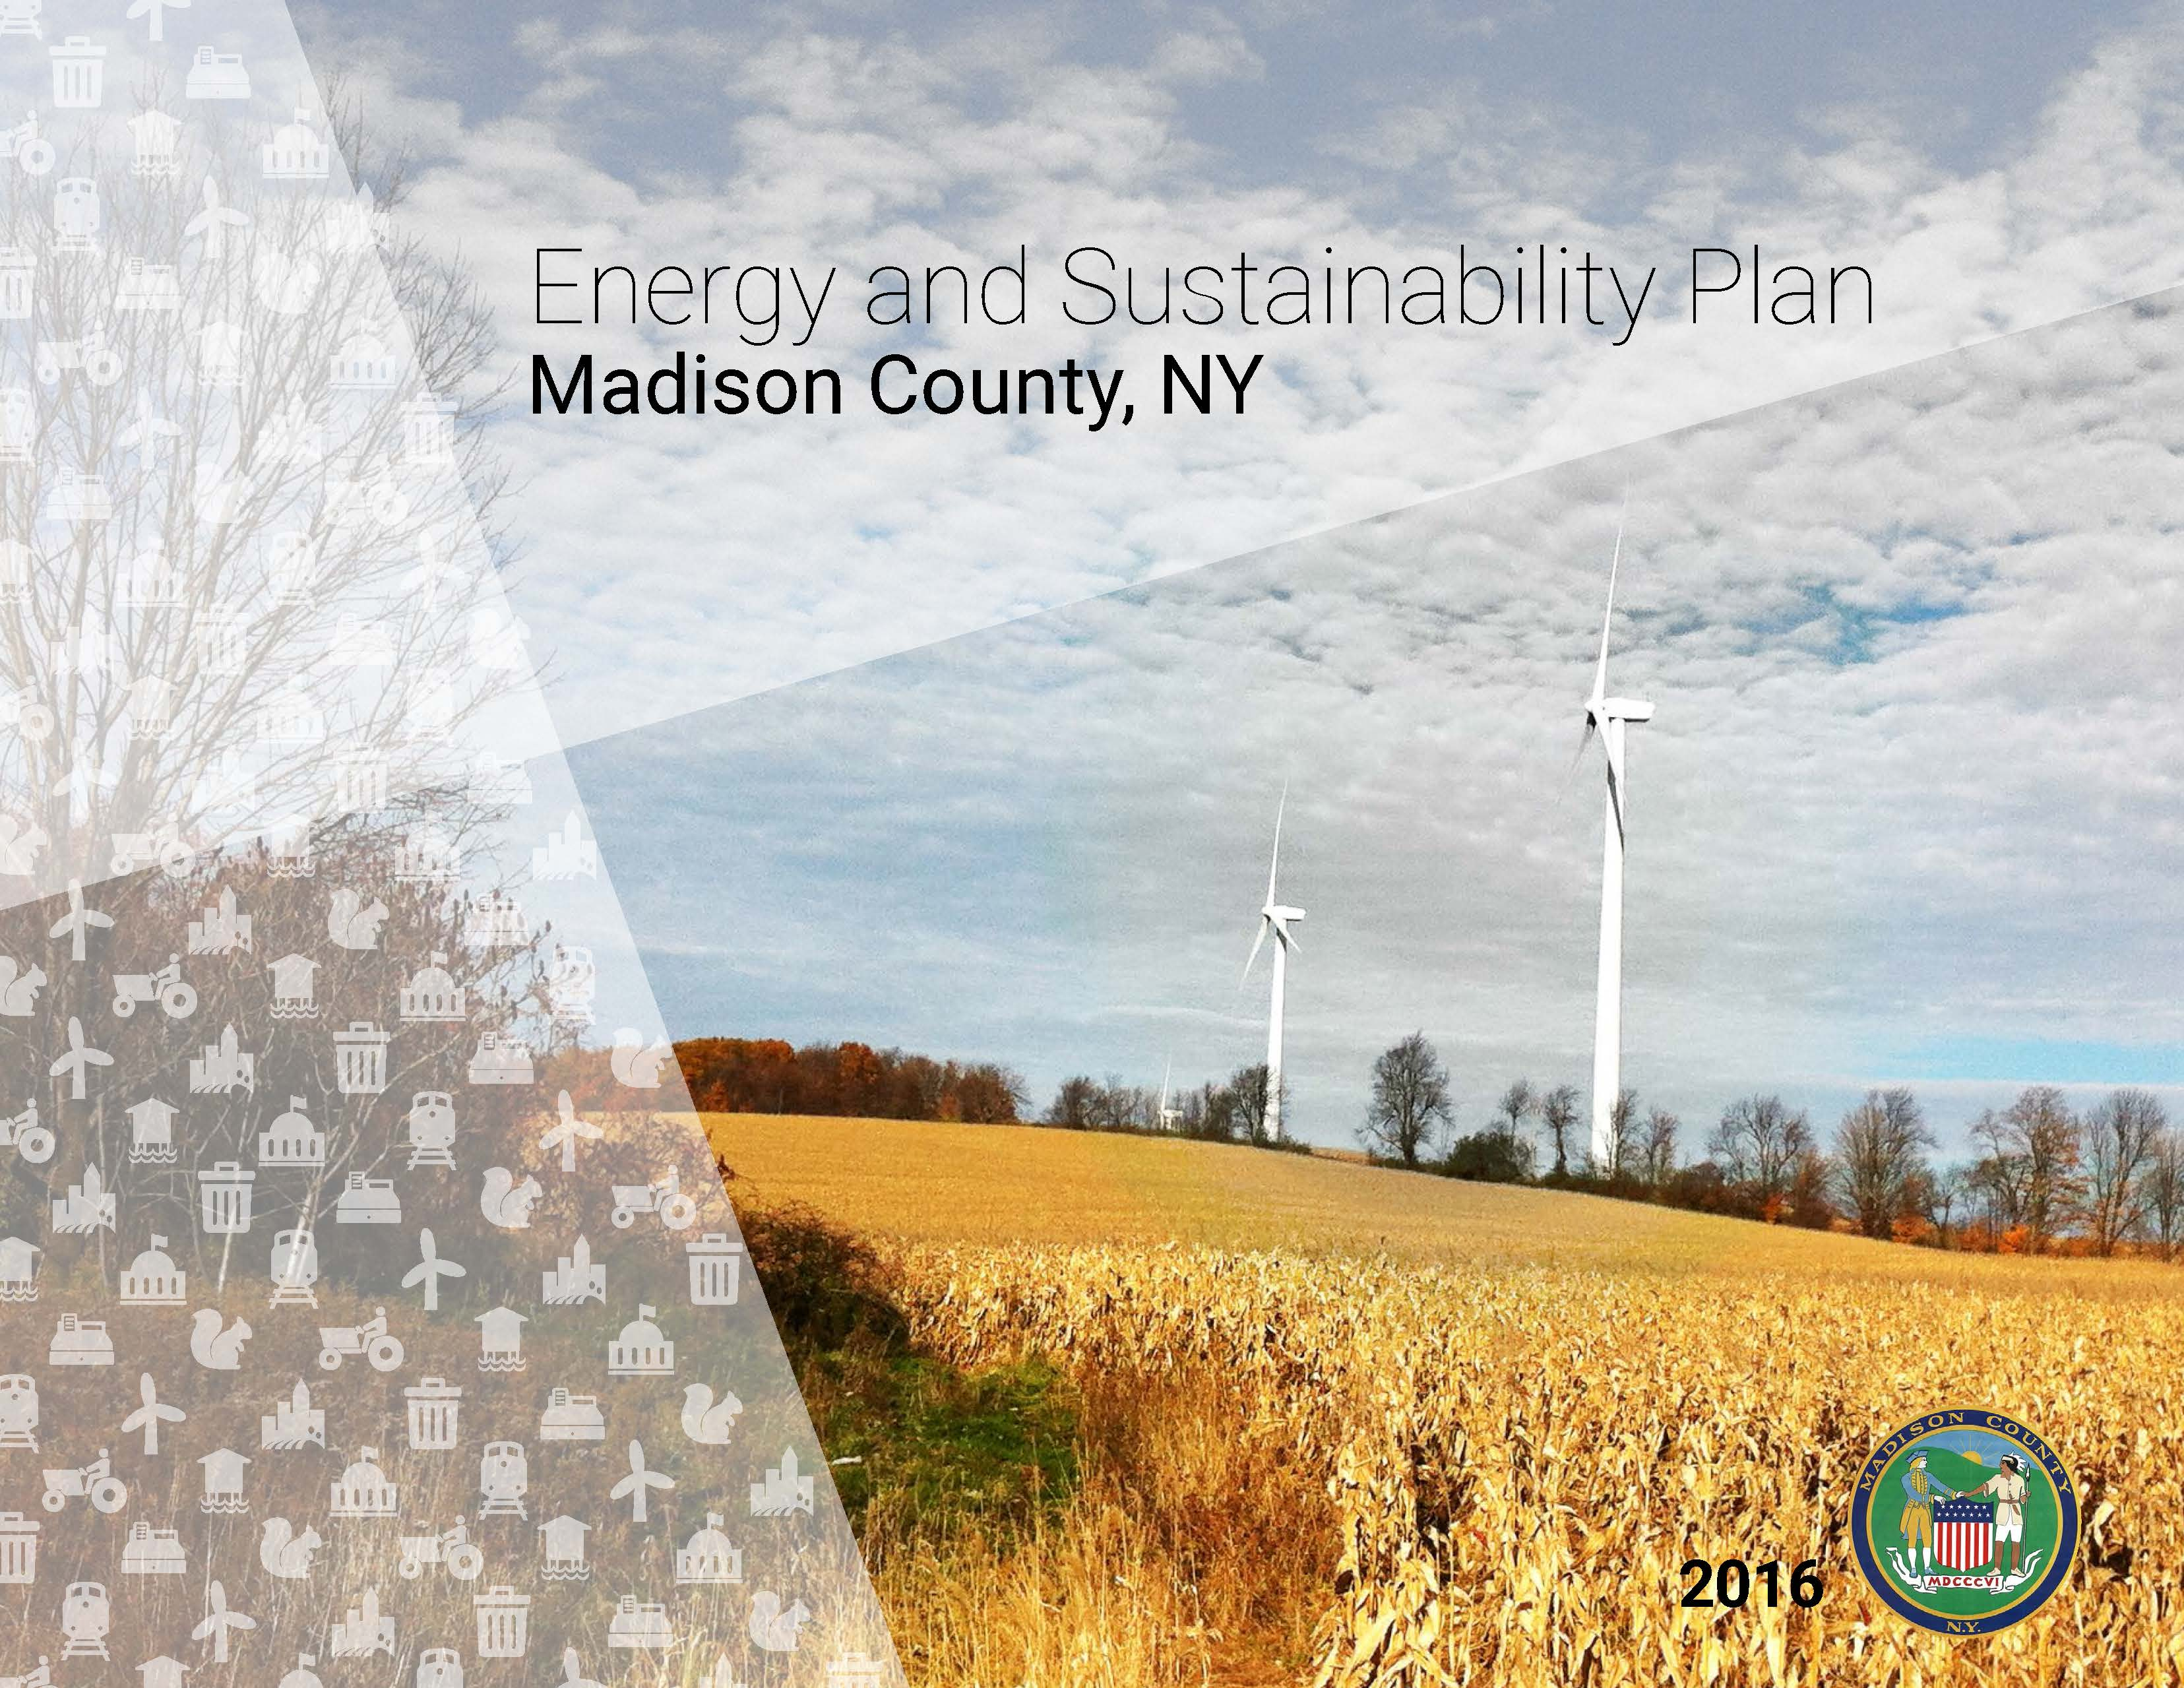 Energy and Sustainability Plan cover